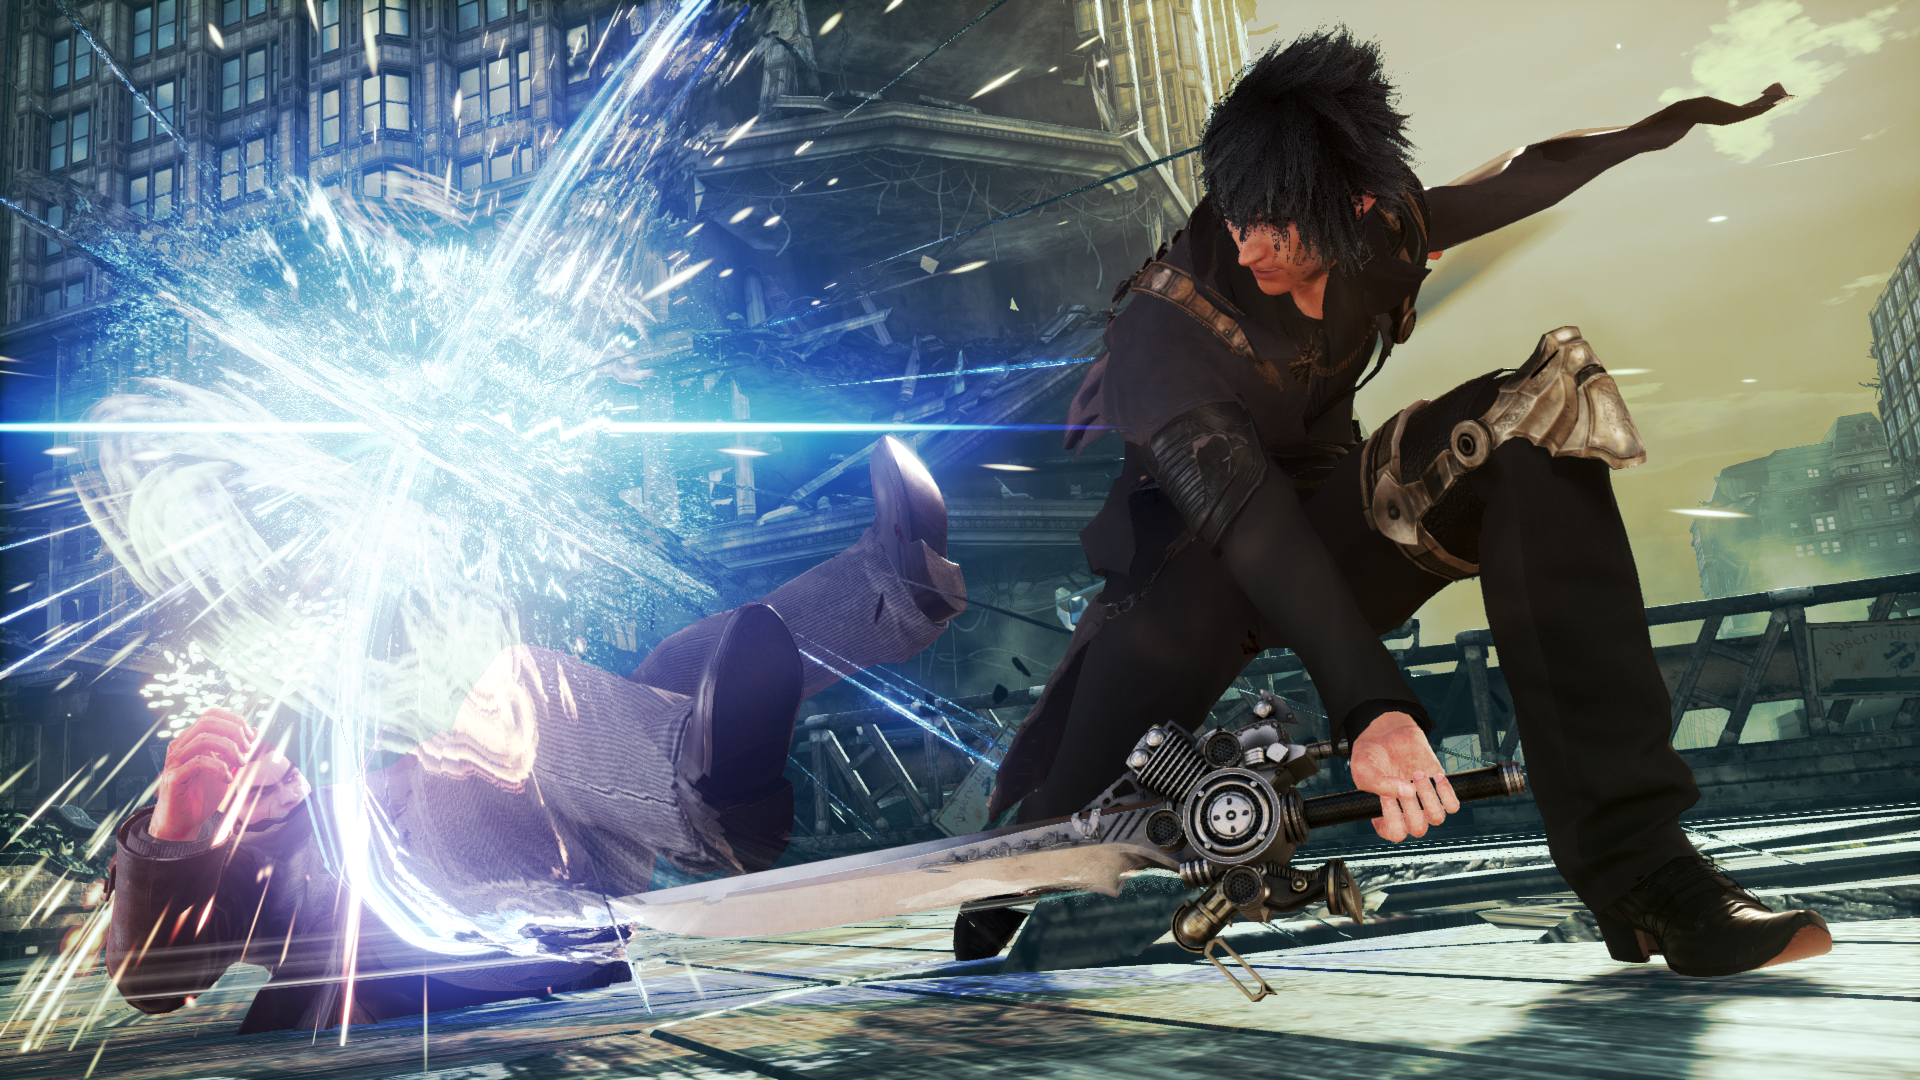 The School Of Hard Noctis: A Guide To Tekken 7's New Crown Prince